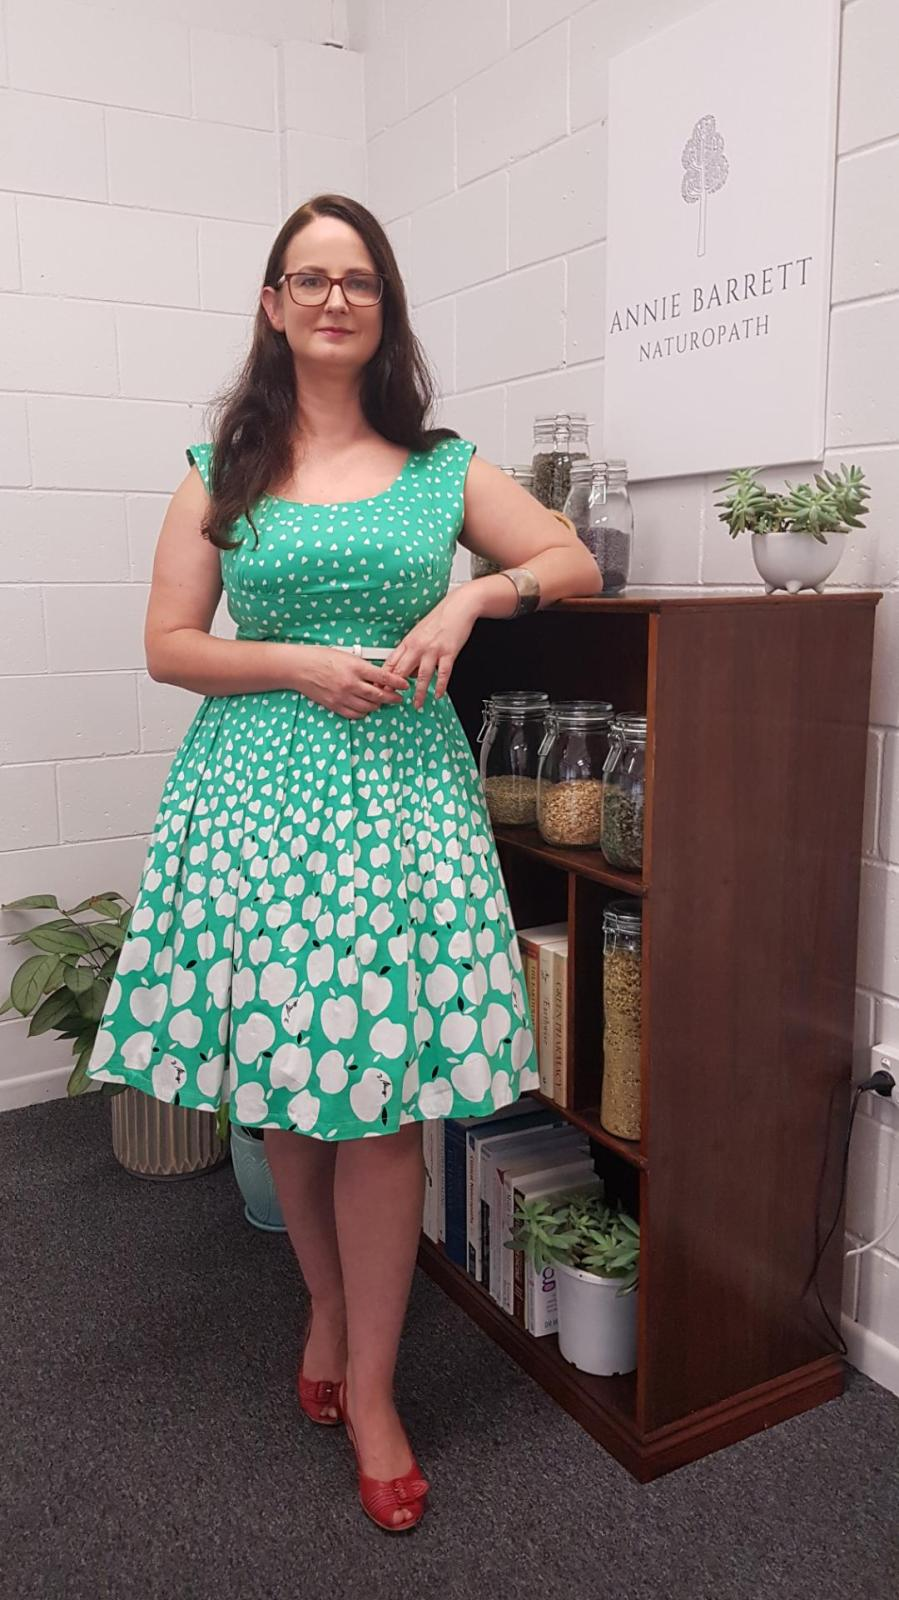 Naturopath Caloundra Sunshine Coast Annie Barrett wearing a green and white dress and red shoes, leaning against a bookshelf filled with different herbal teas and books